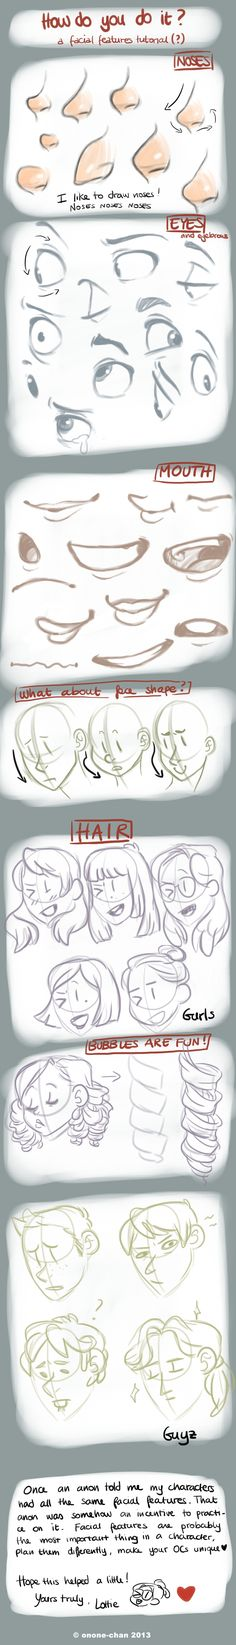 Facial features tutorial. Created by Onone-chan from Deviant Art